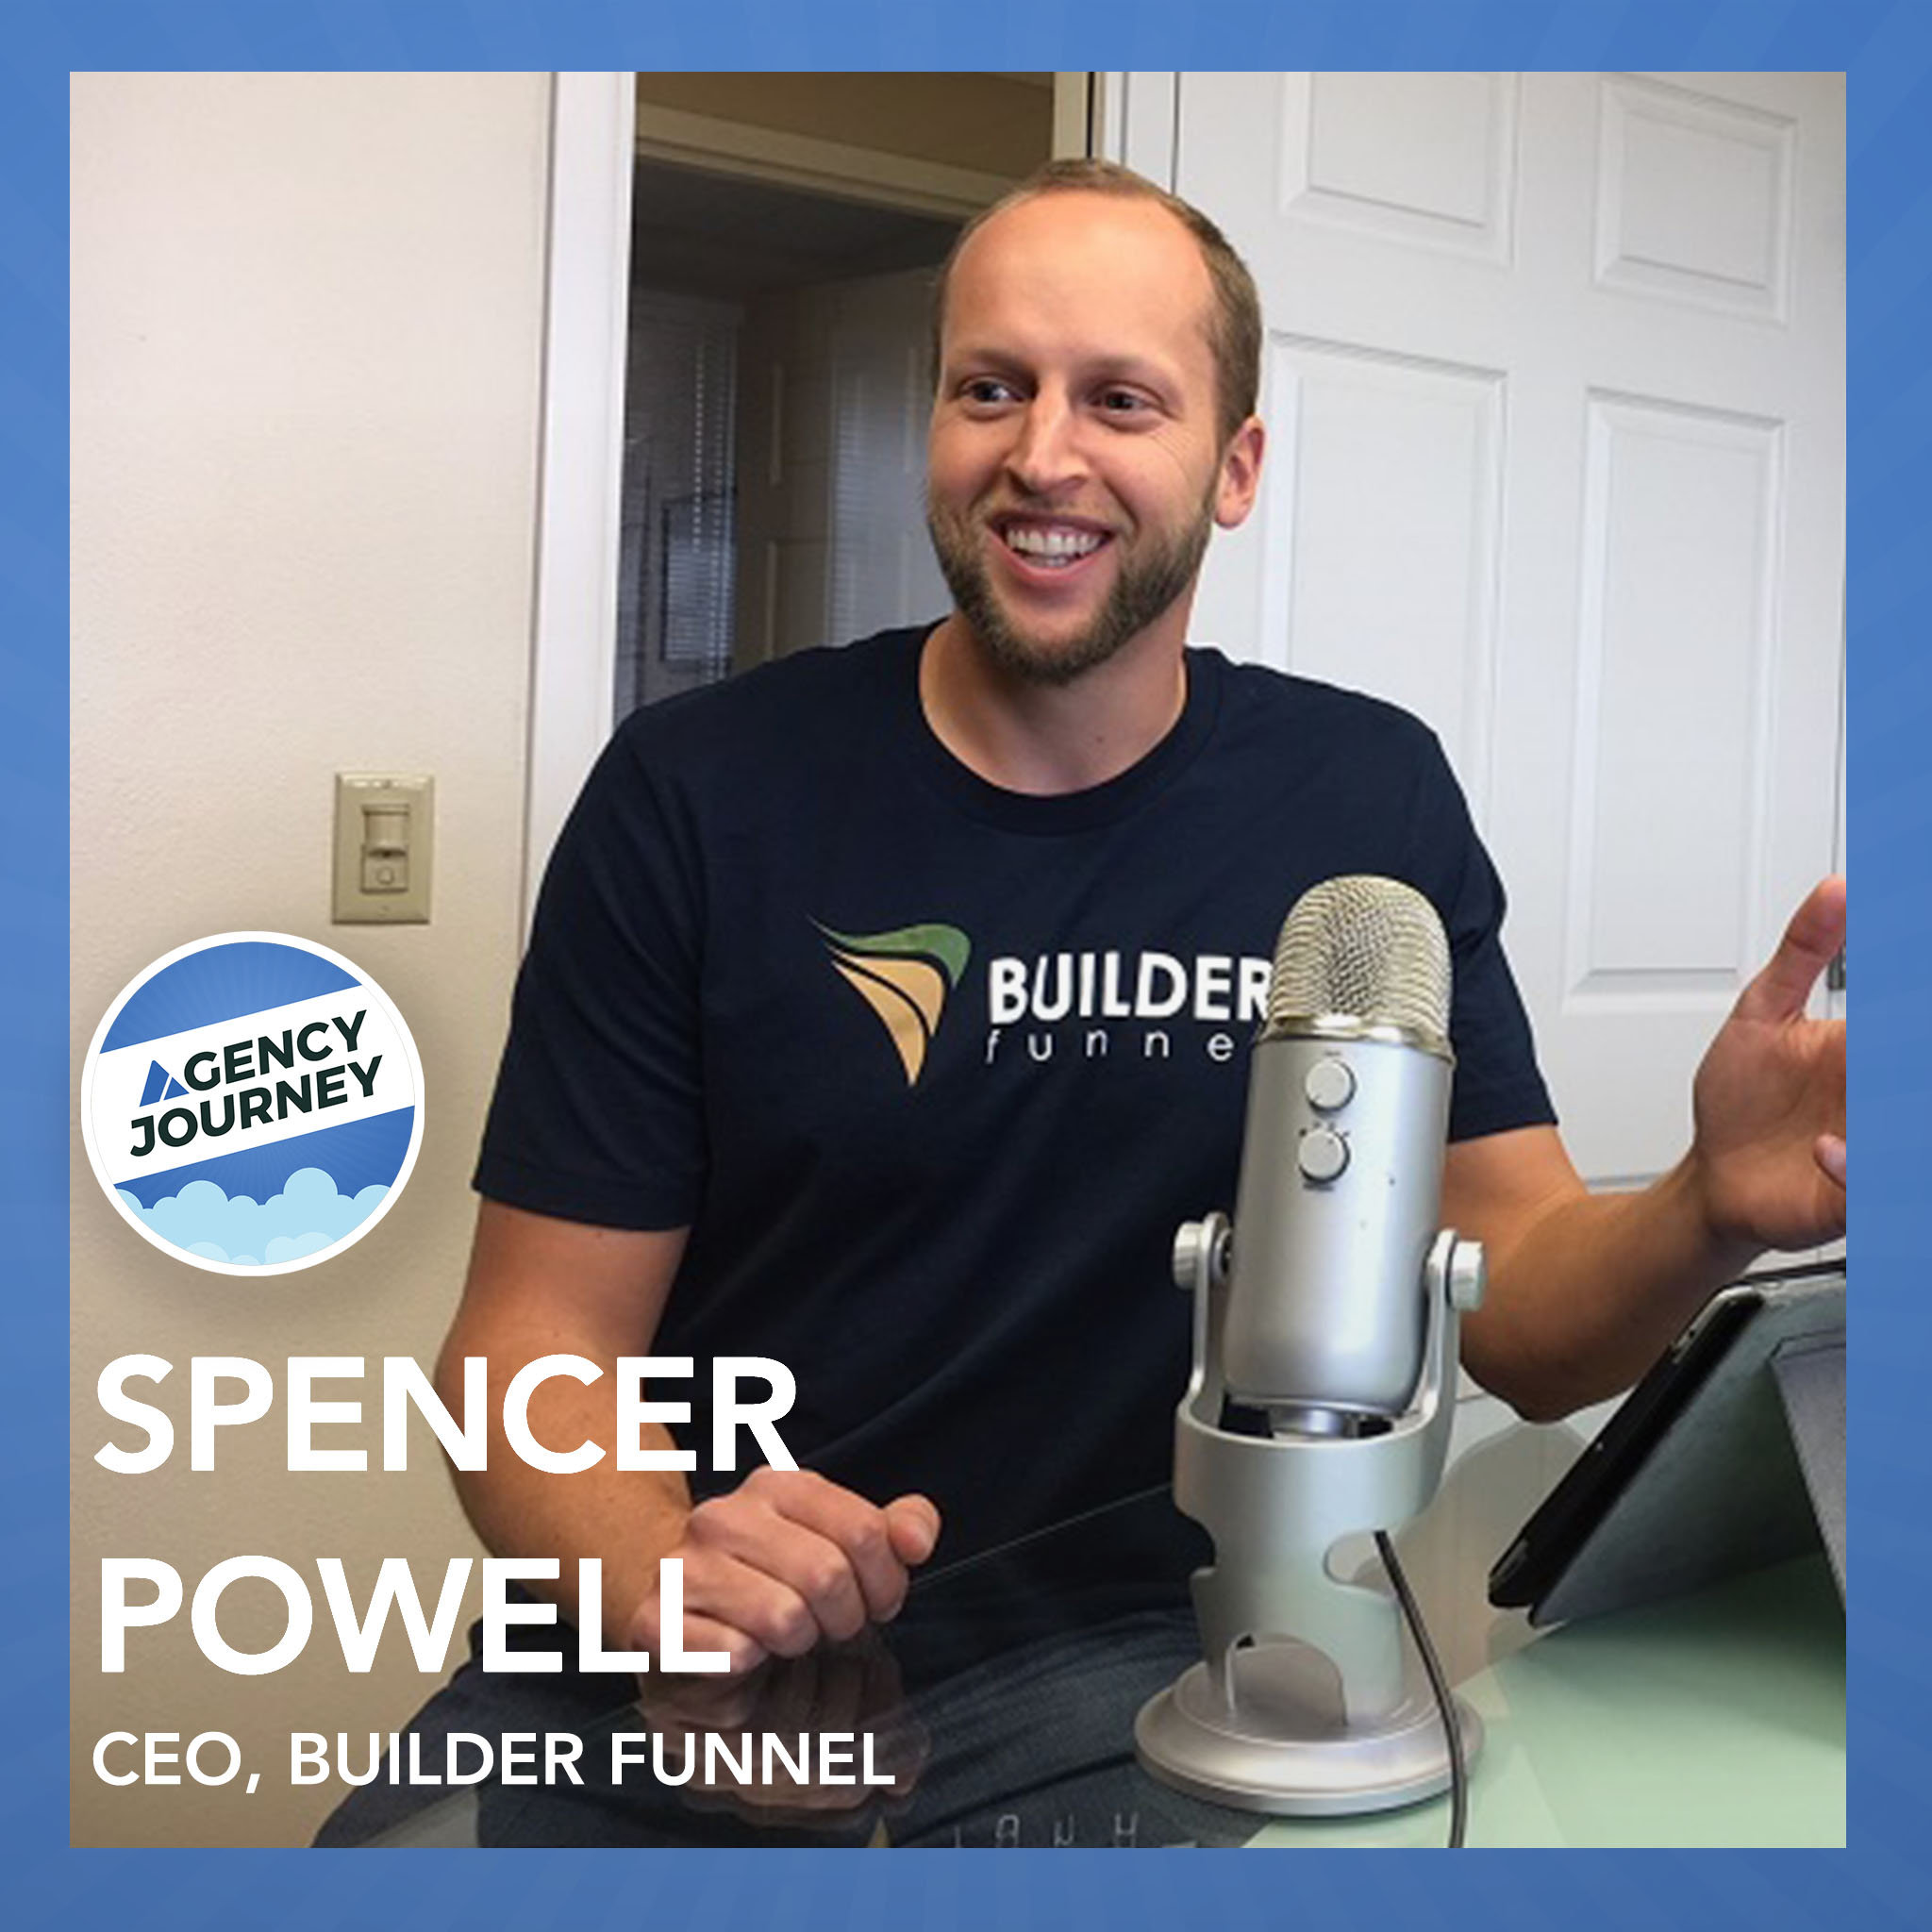 Vertical Specialization and Agency Podcasting with Spencer Powell